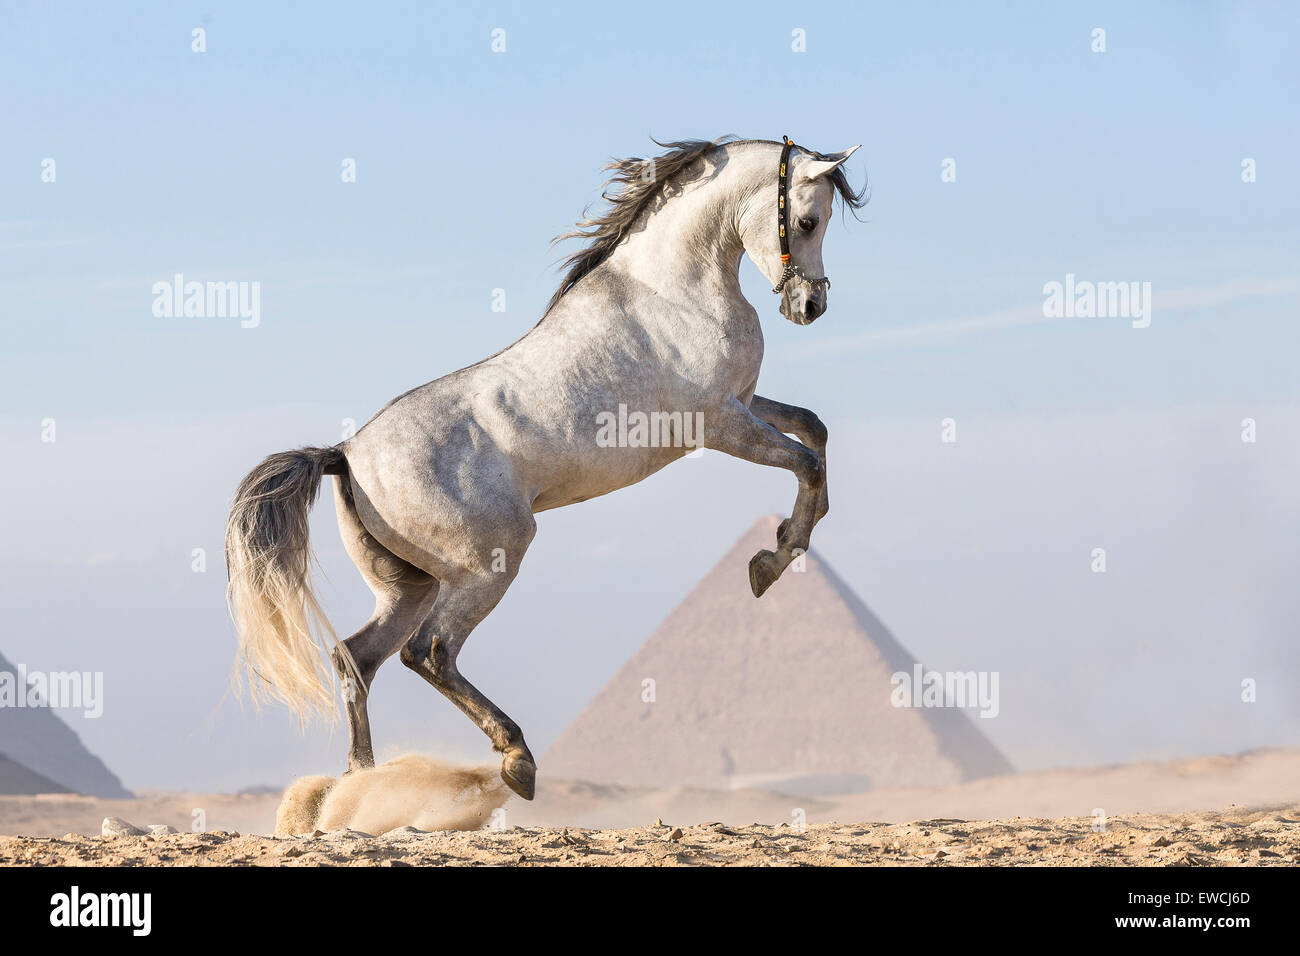 Arabian Horse Gray Stallion Rearing In Front Of The Pyramids Of Giza Stock Photo Alamy